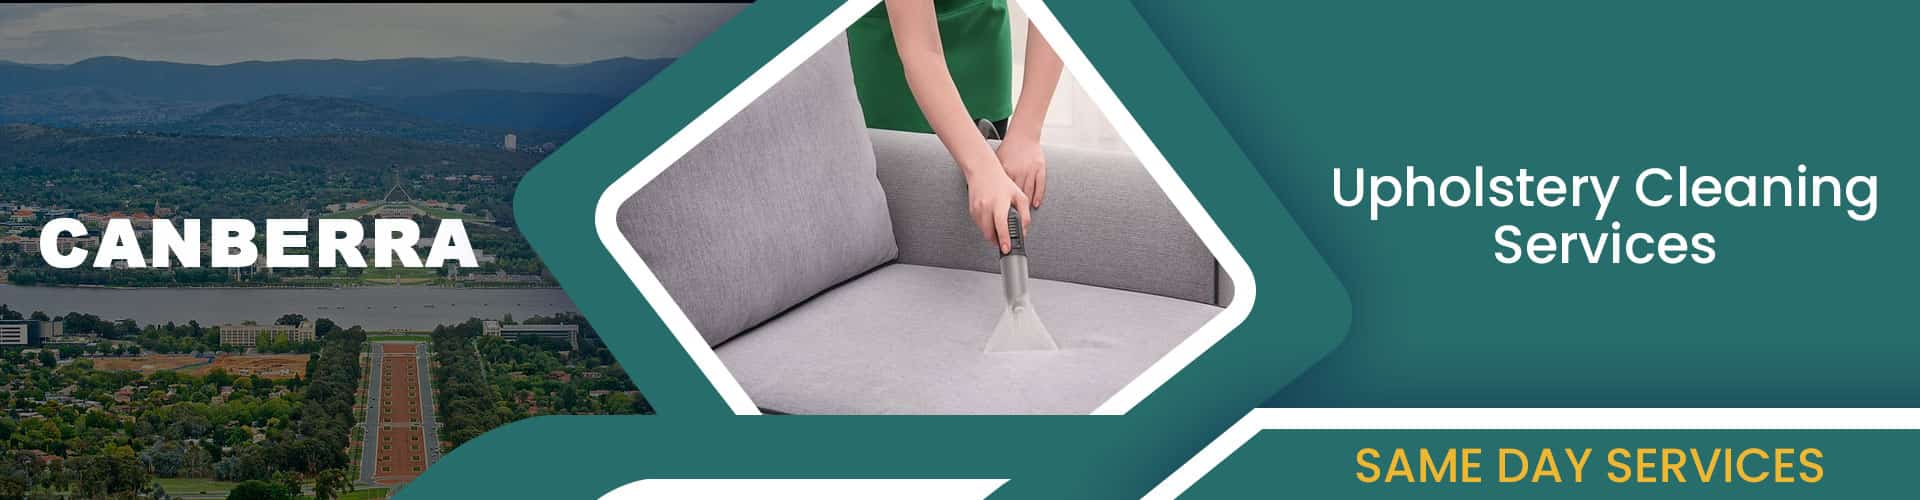 Upholstery Cleaning Canberra